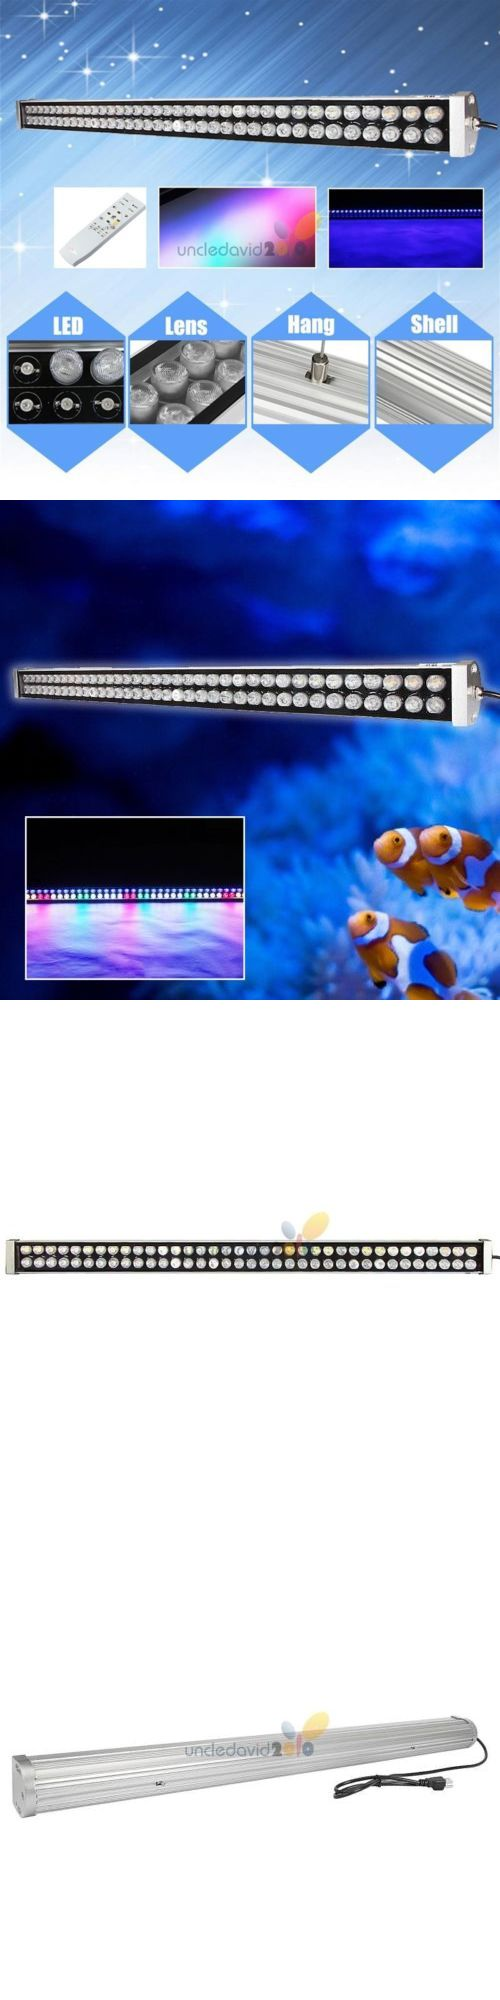 Aquarium fish tank online chennai - Lighting And Bulbs 46314 216w Led Aquarium Grow Light Bar Strip Fixture For Reef Coral